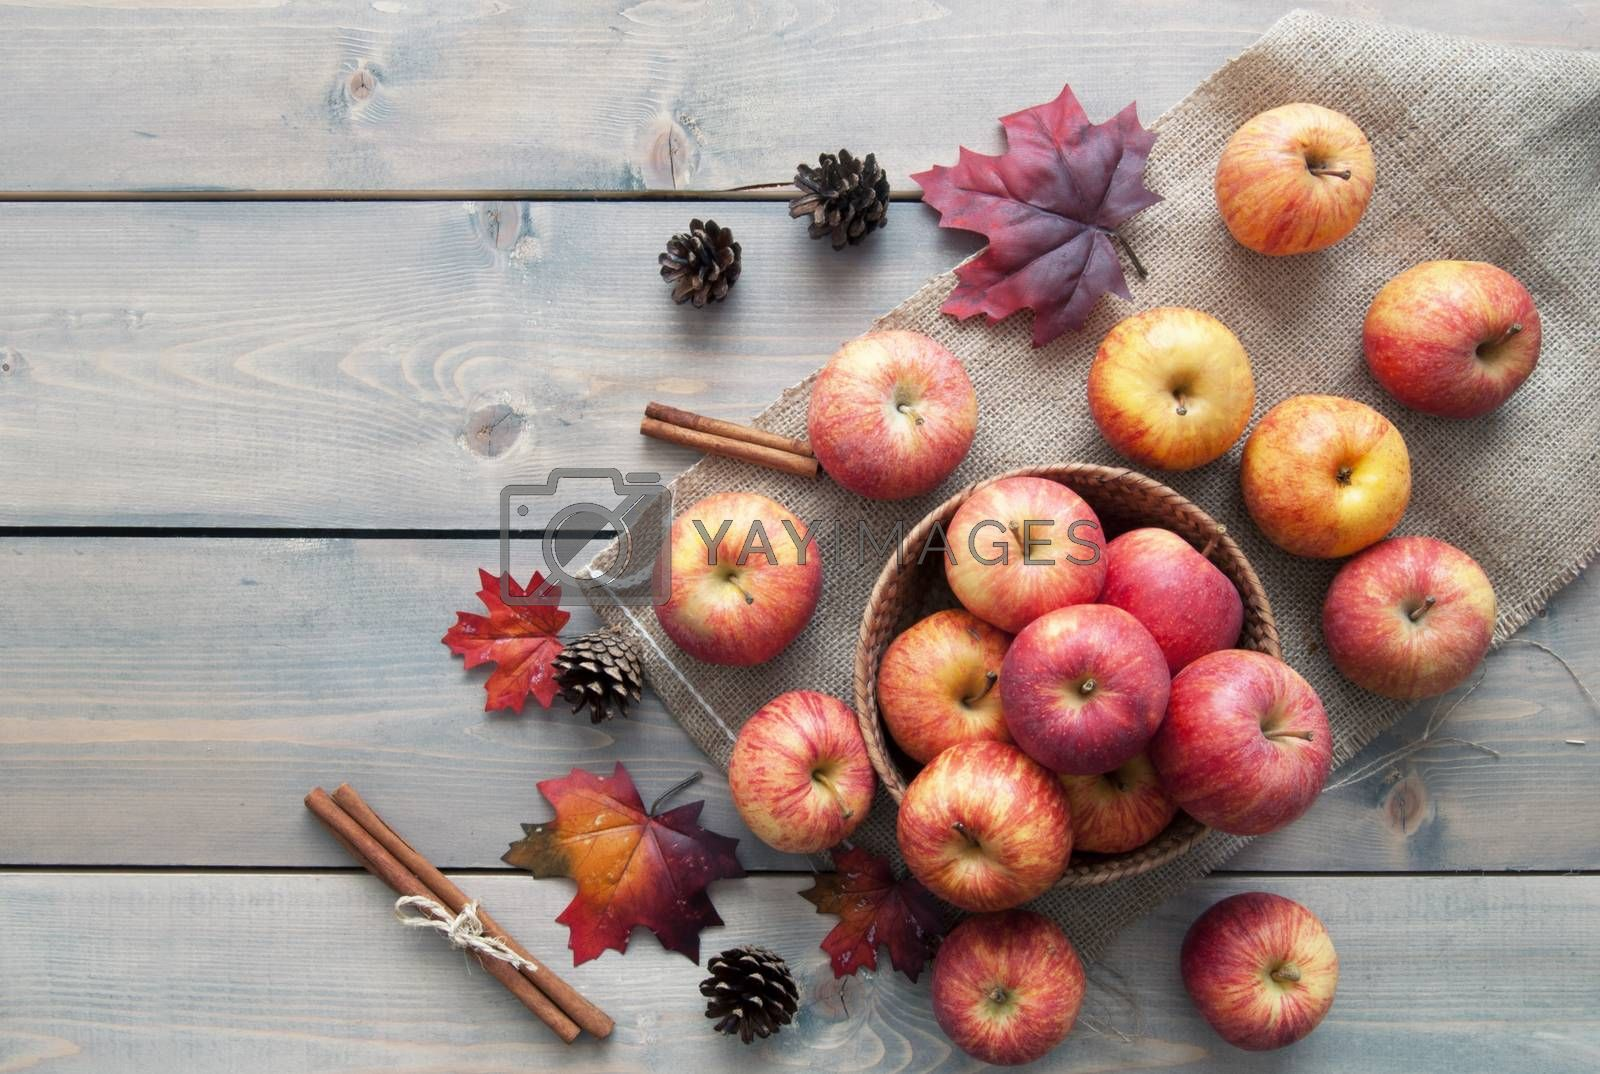 Autumn leaves with apples over a wooden background